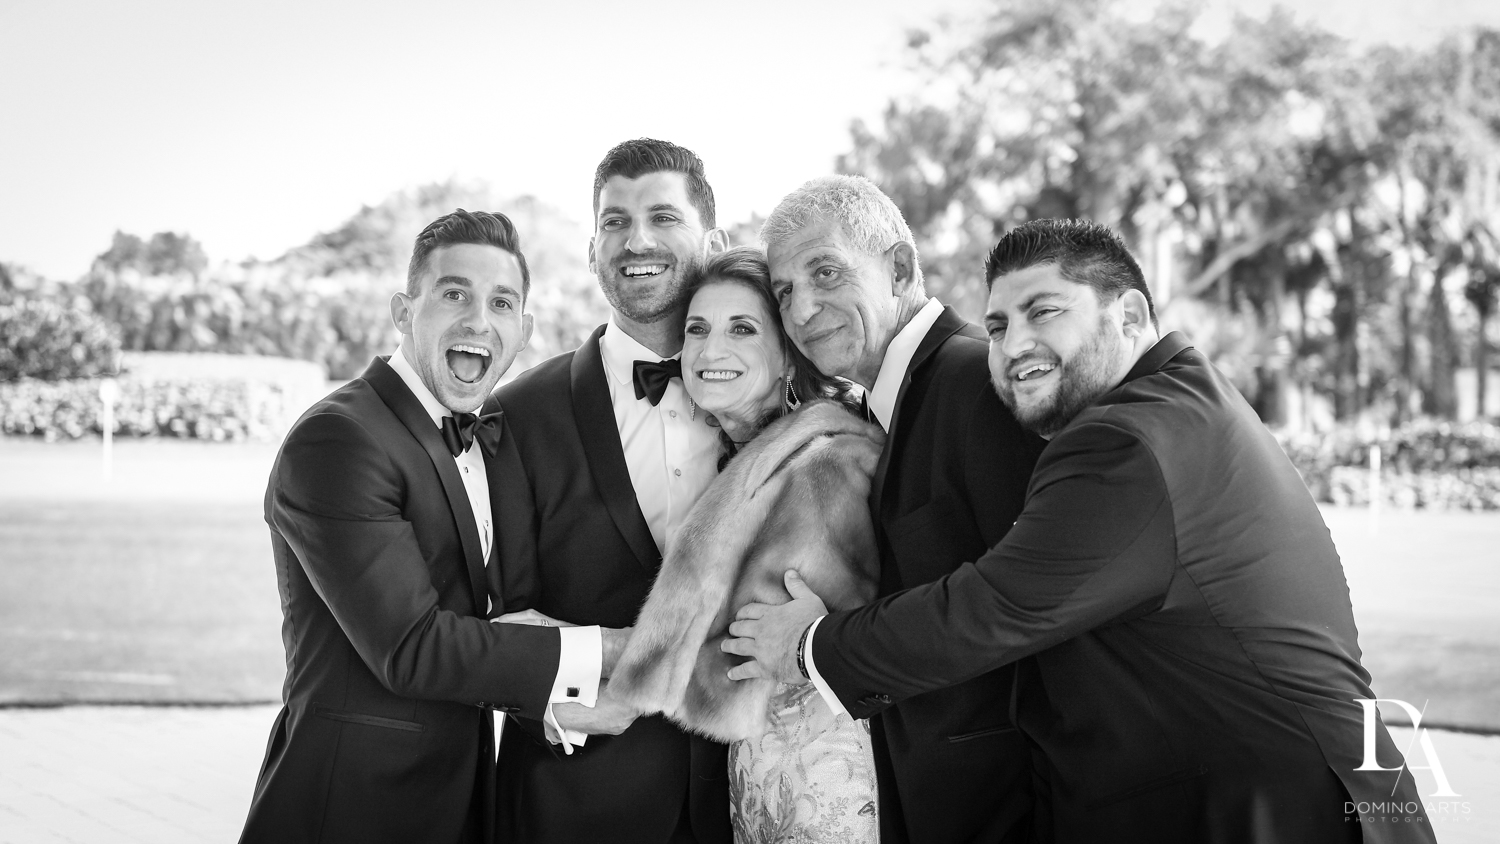 family shots at Sunset Wedding at Boca Rio Golf Club by Domino Arts Photography